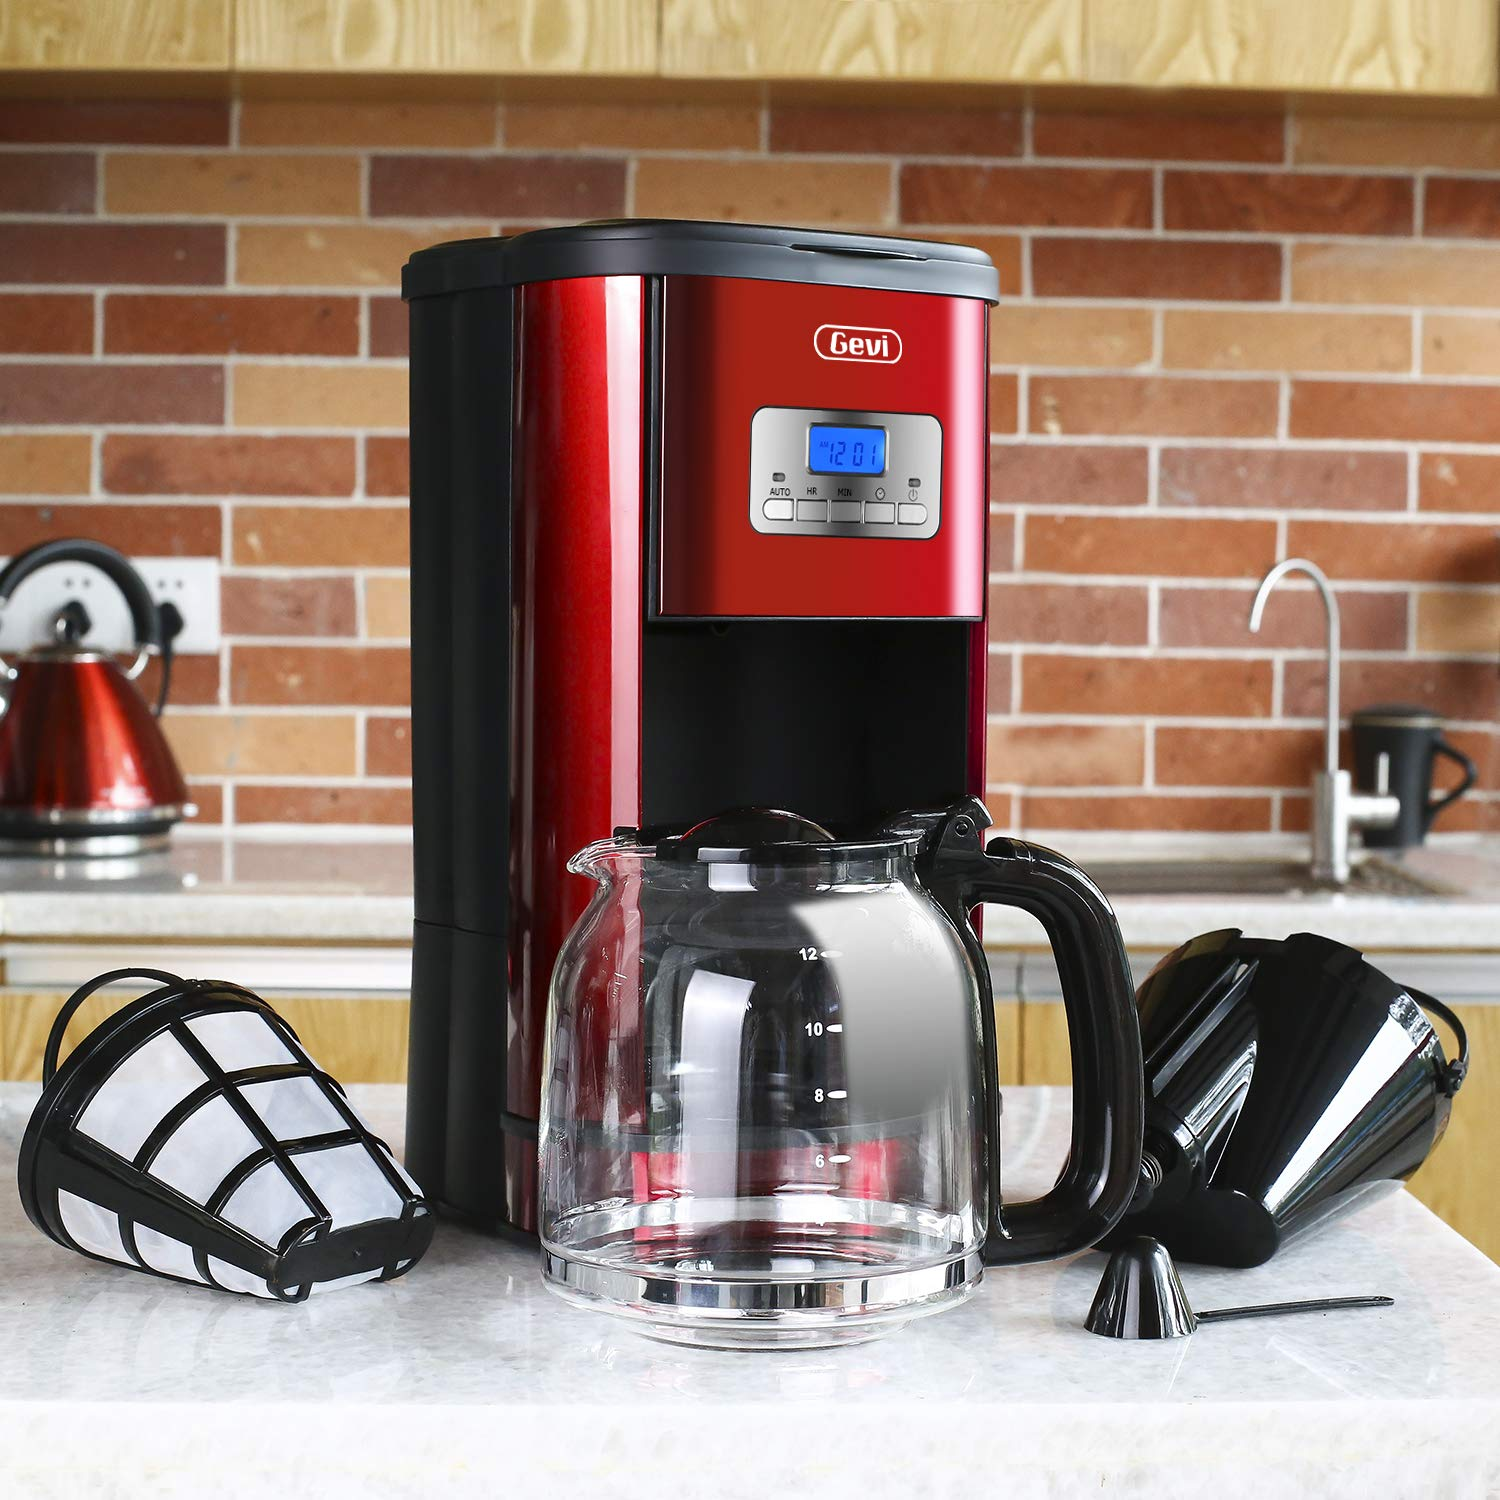 Coffee Maker GEVI 12 Cup Coffee Machine Stainless Programmable Setting Silent Operation Drip Coffeemaker with Coffee Pot and Filter for Home and Office red